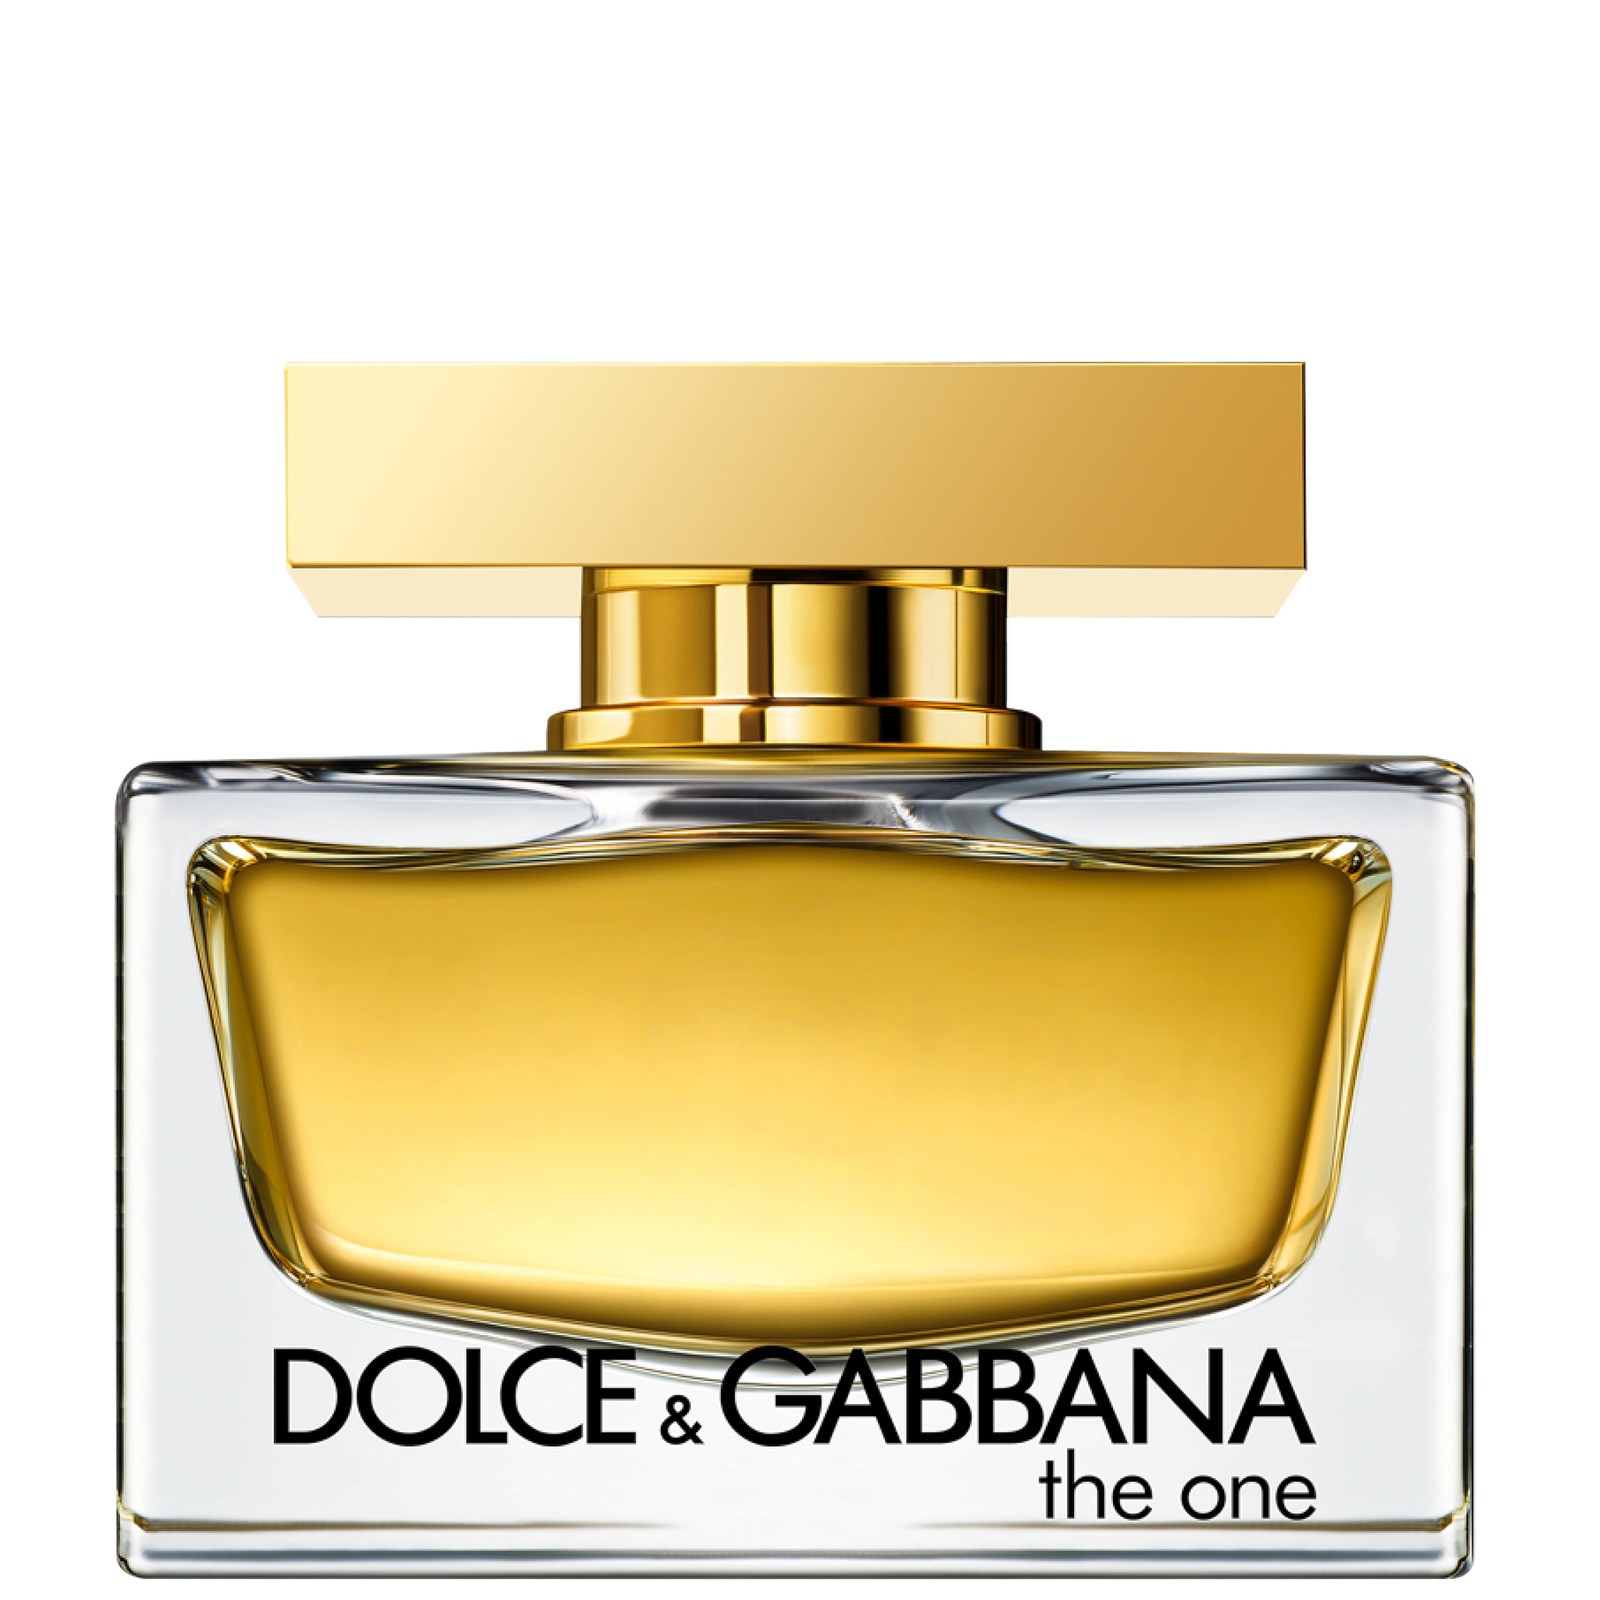 c0b063ca6358 DOLCE & GABBANA The One Eau de Parfum Spray 50ml - Perfume